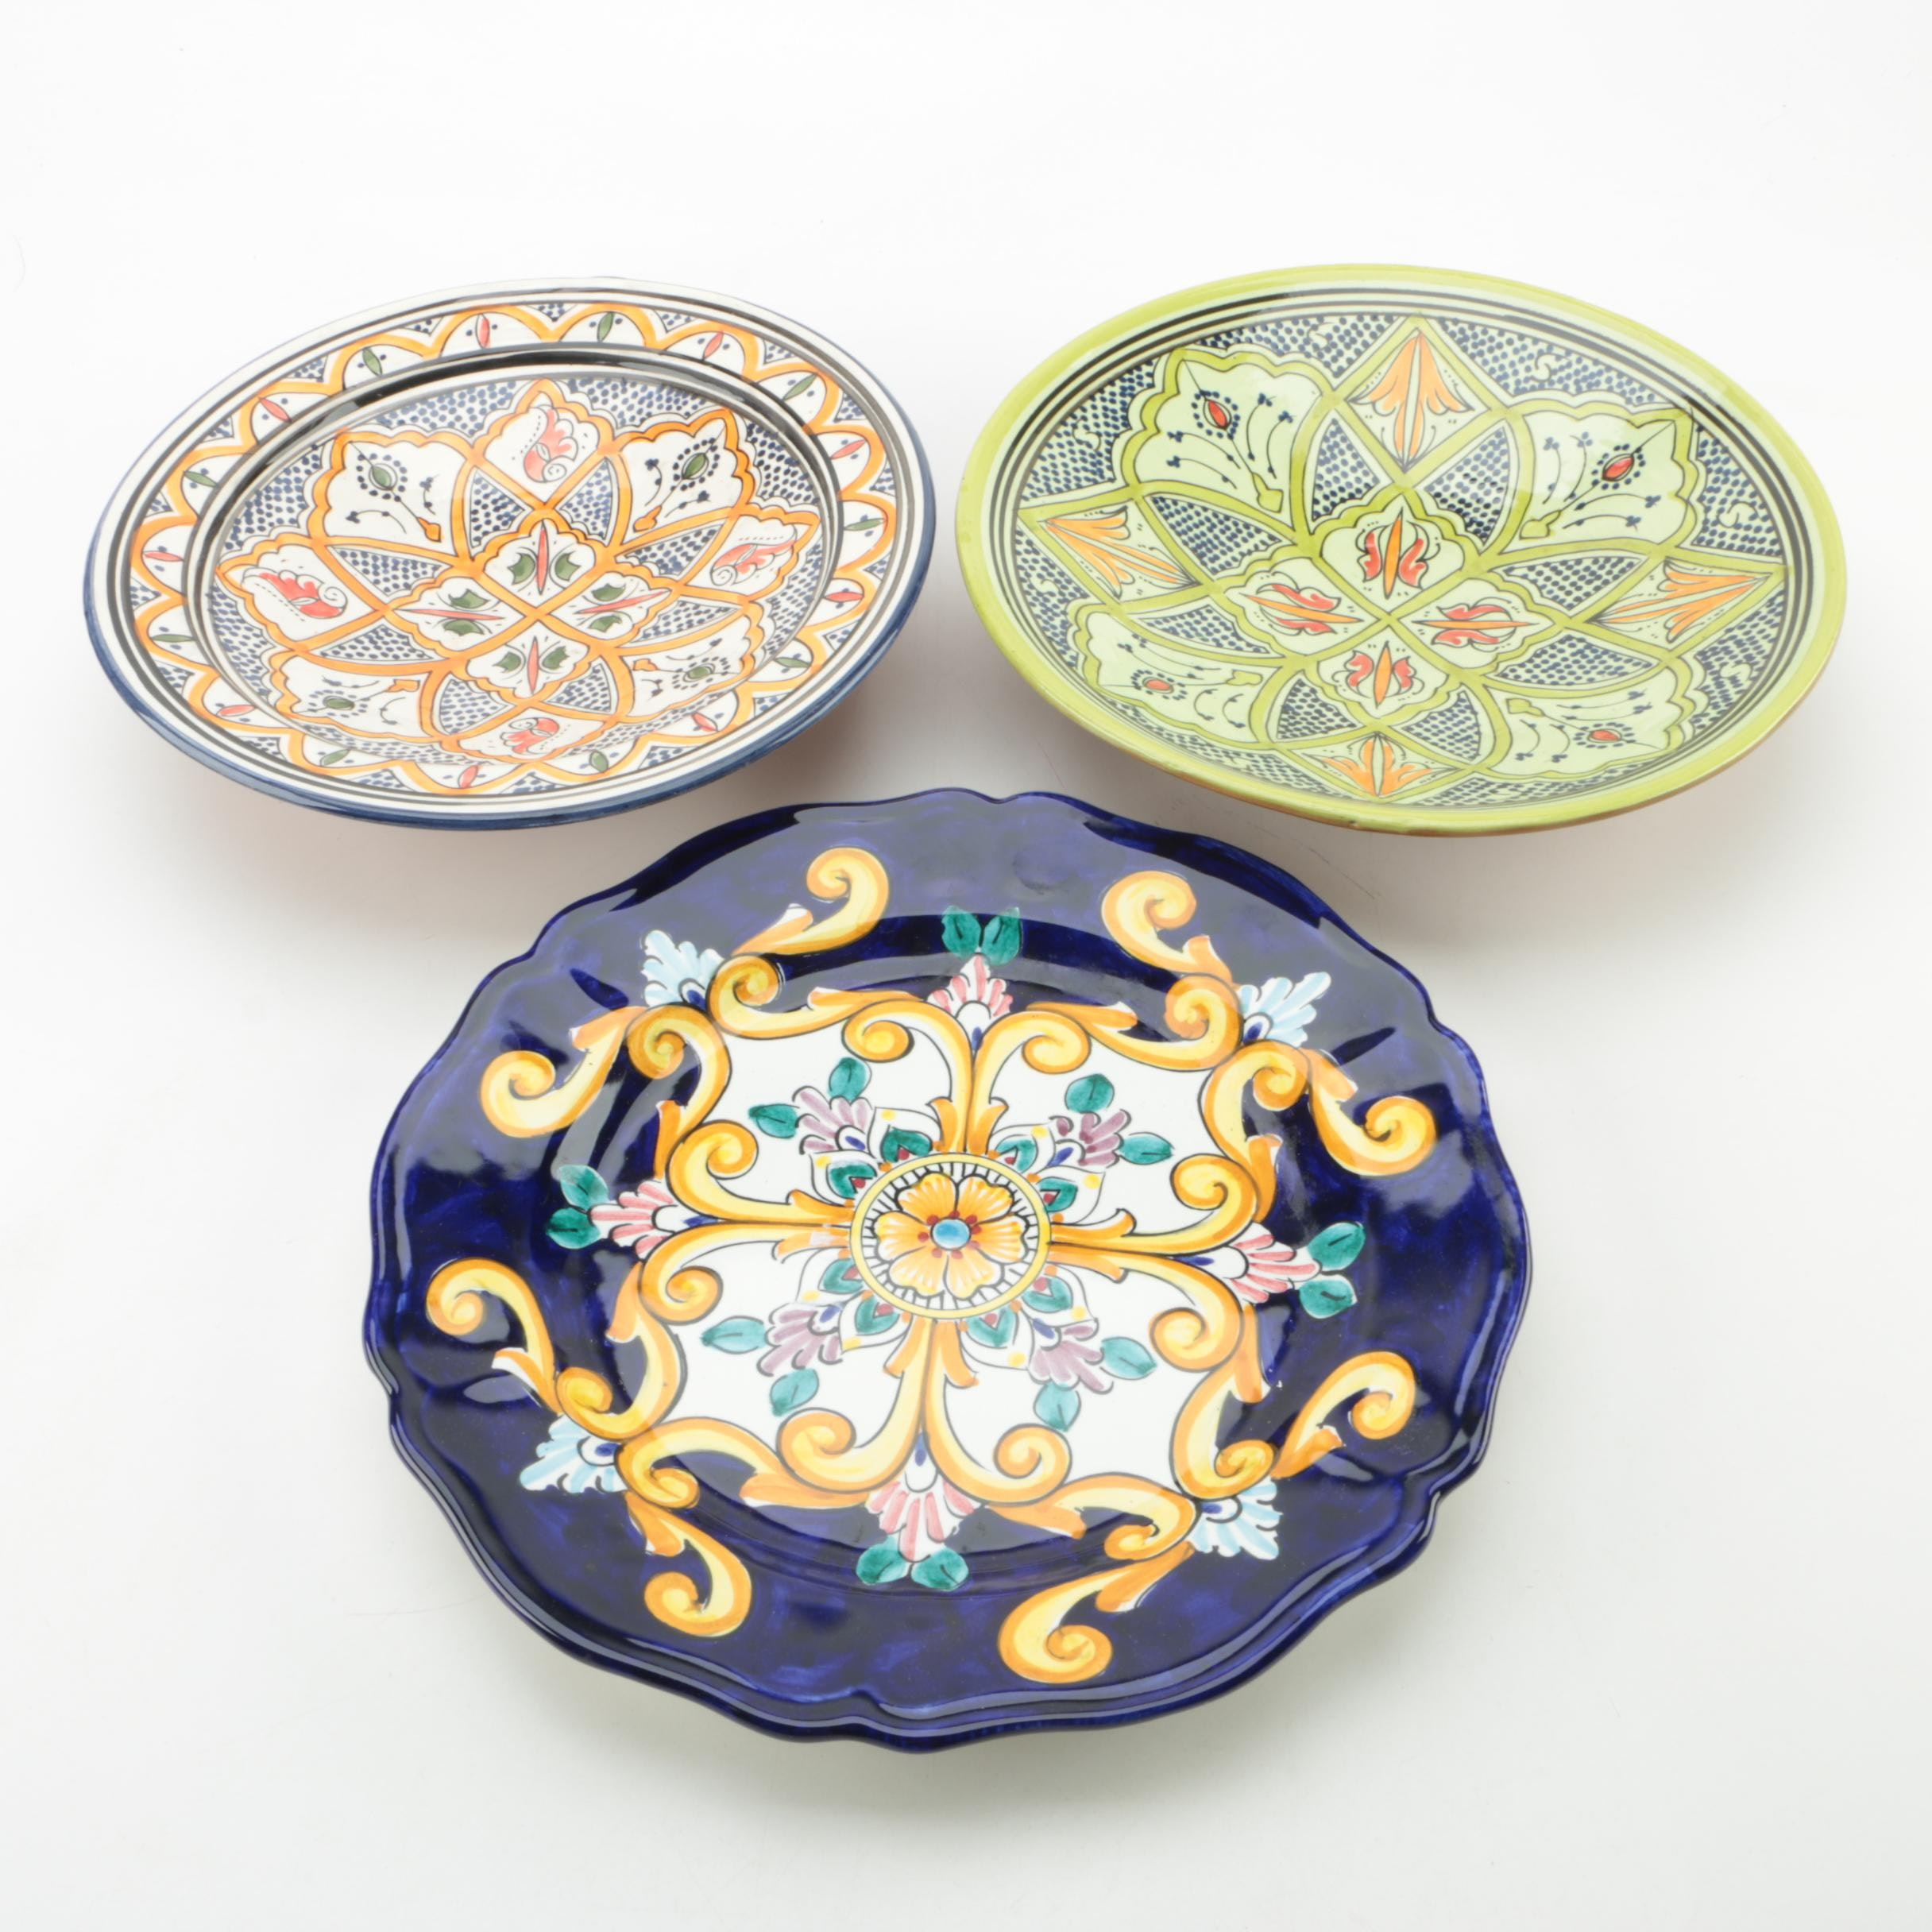 Hand Painted Moroccan and Ravello Italian Tableware ...  sc 1 st  EBTH.com & Hand Painted Moroccan and Ravello Italian Tableware : EBTH